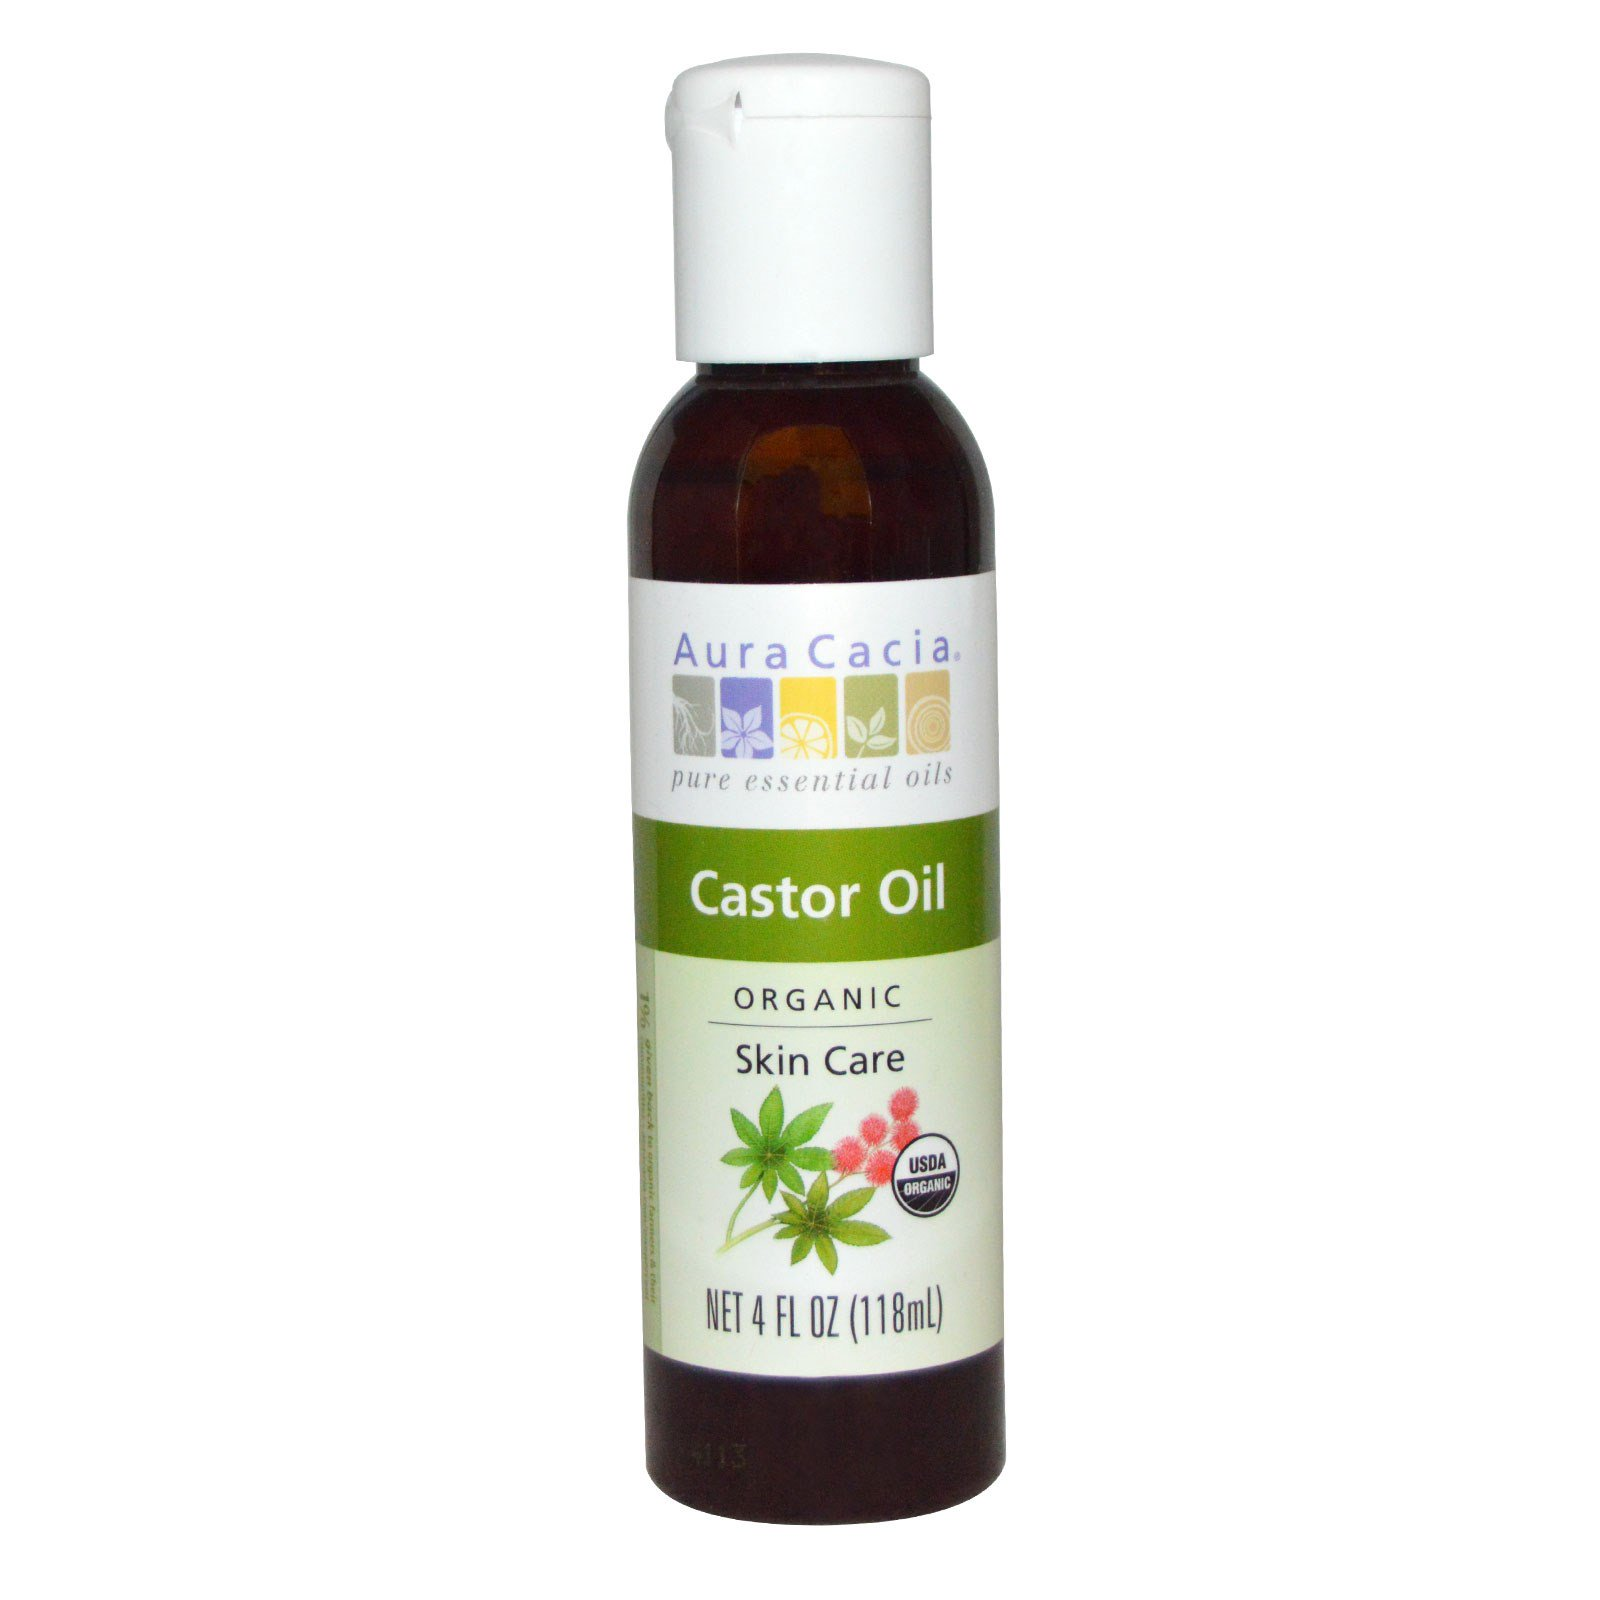 Aura Cacia, Castor Oil, Organic, Skin Care, 4 fl oz (118 ml)